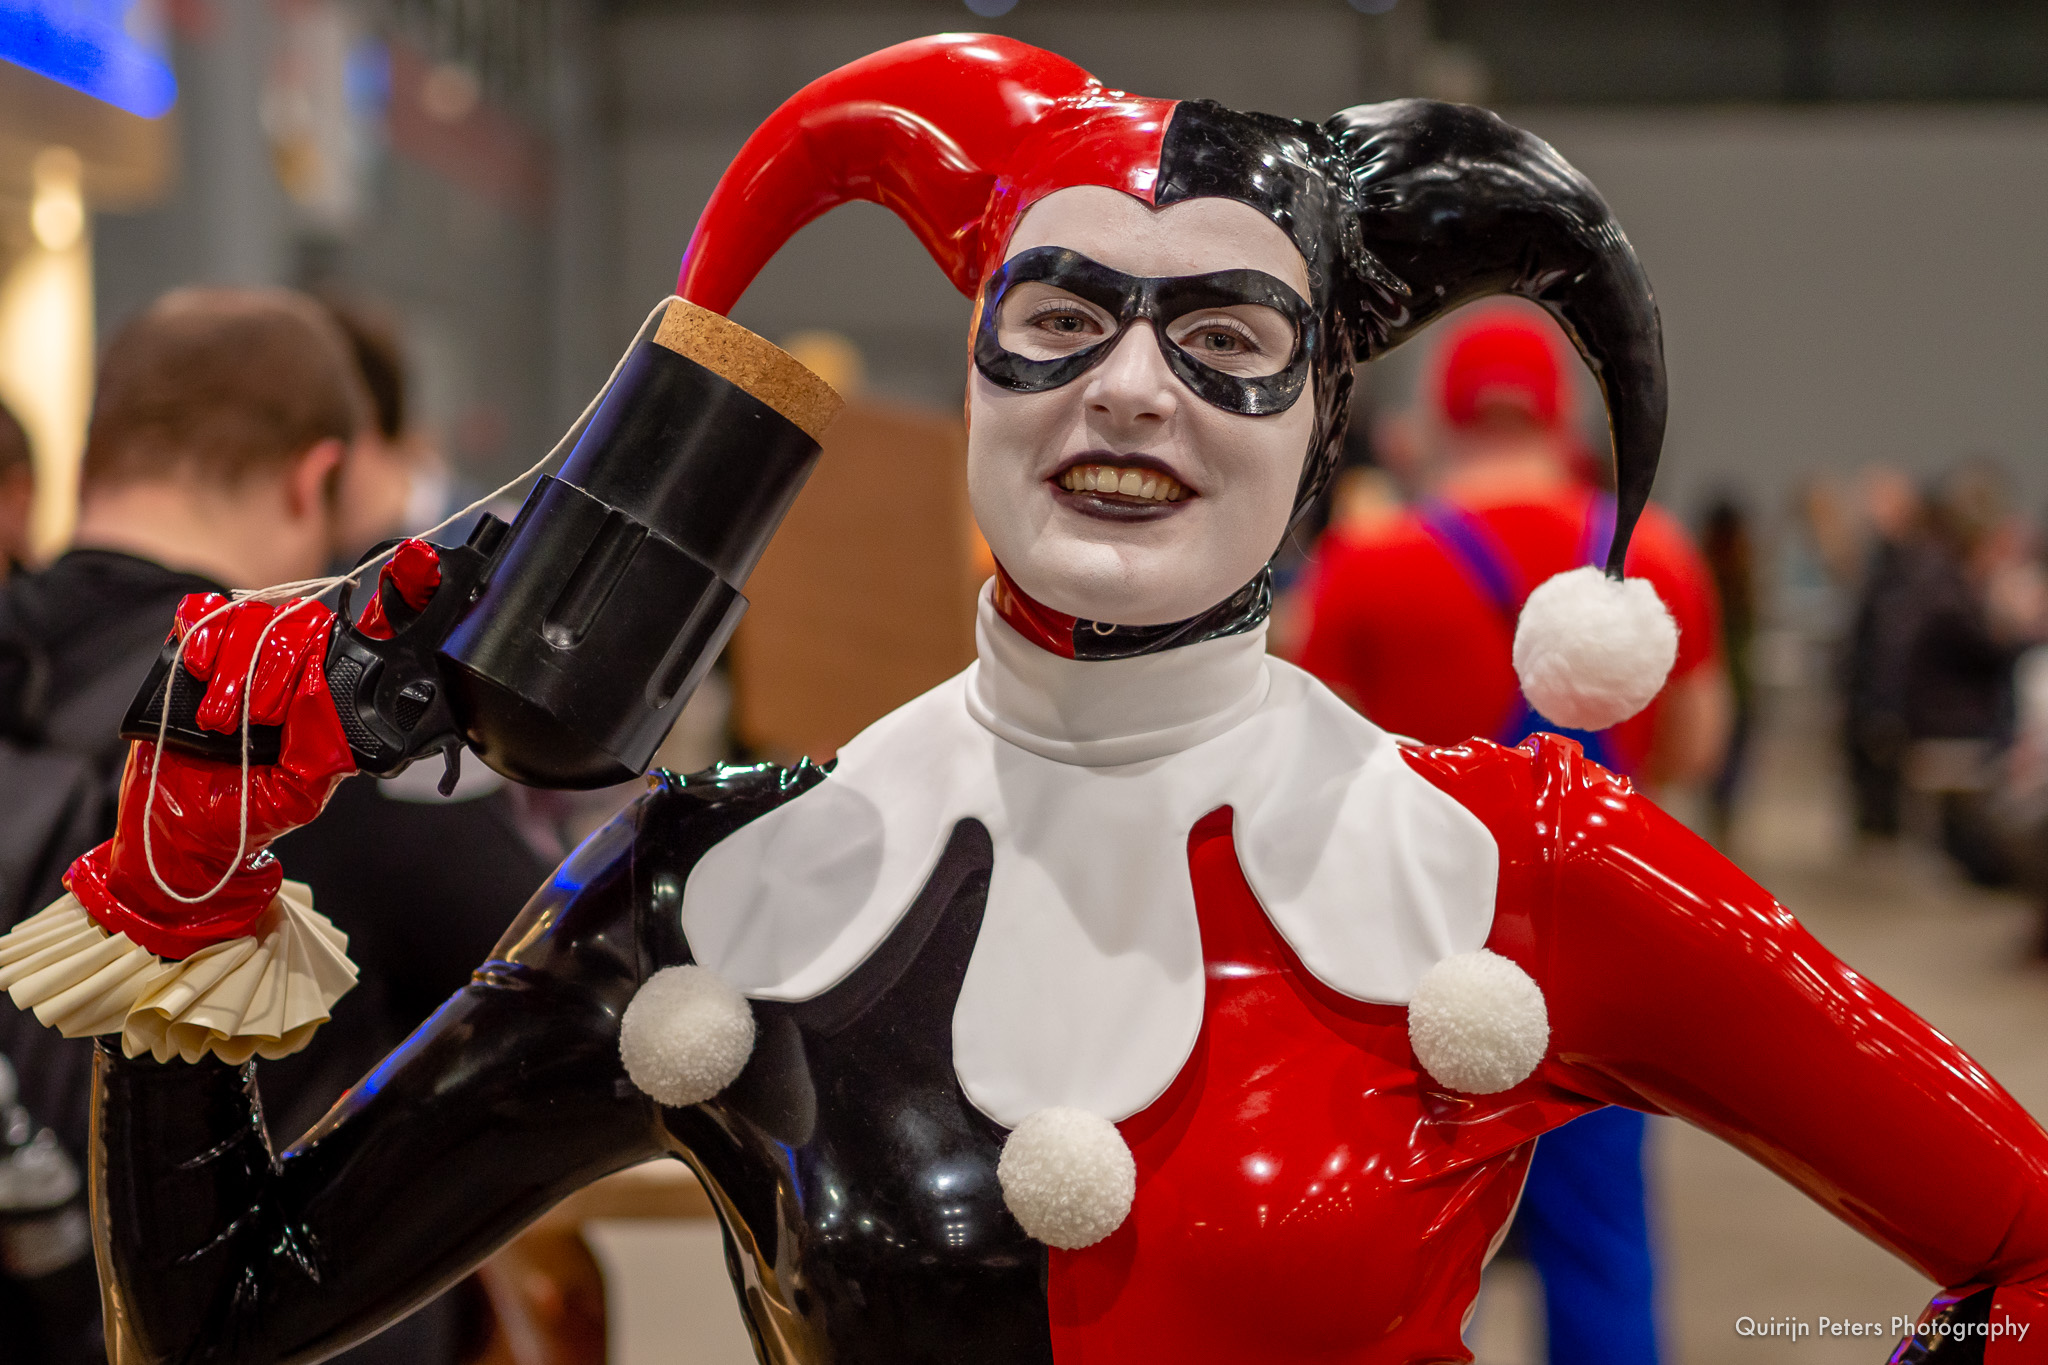 Dutch Comic Con Winter 2018